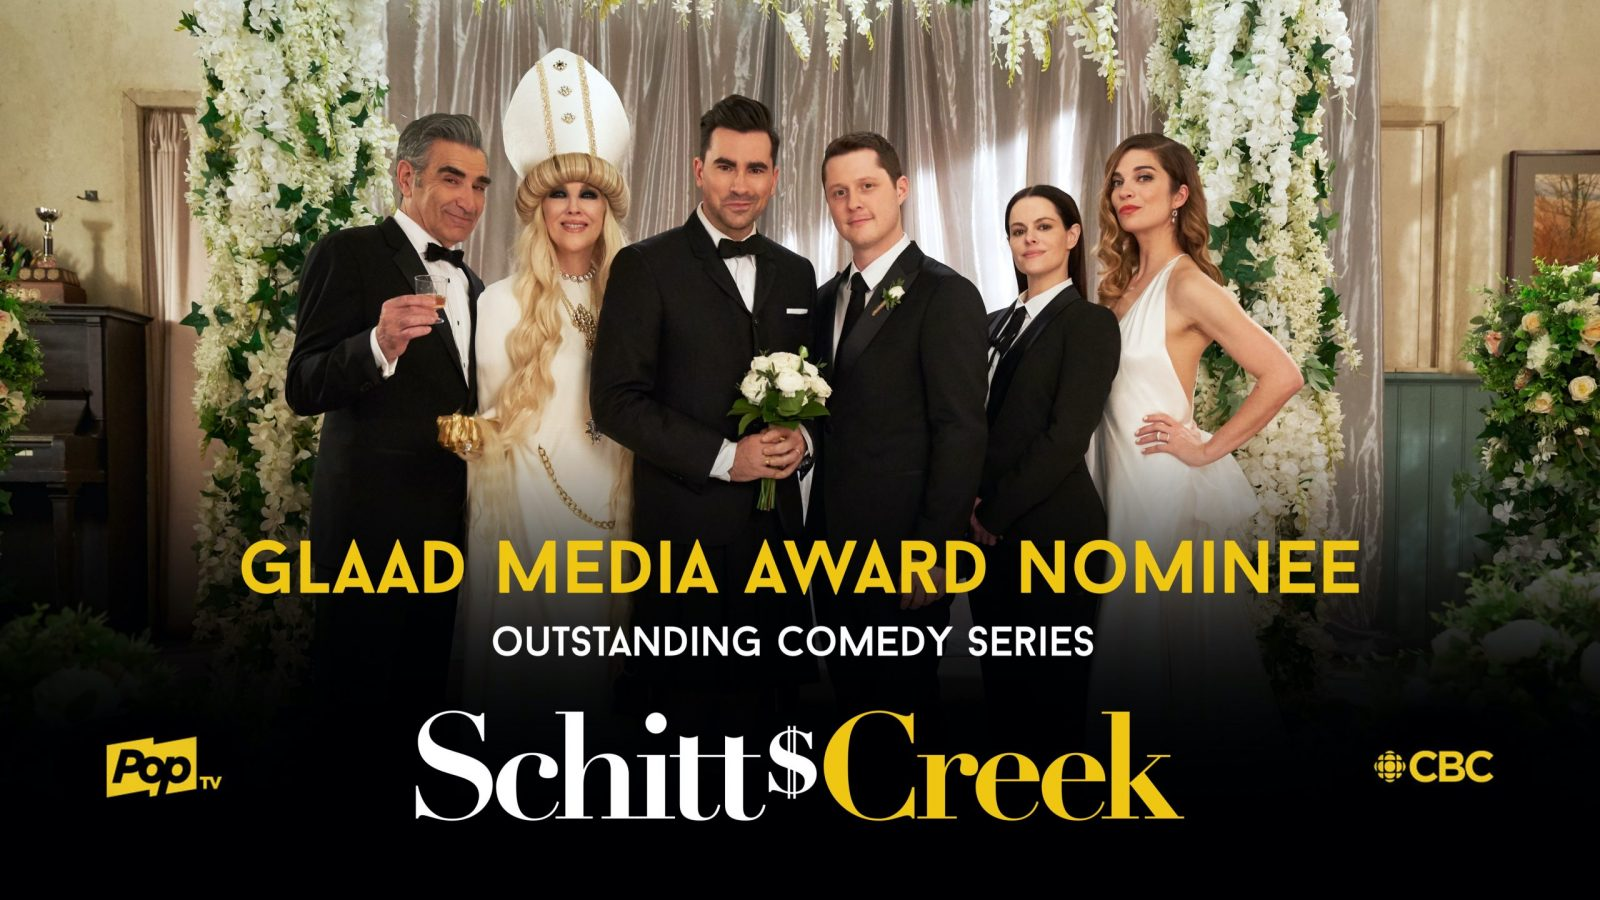 poster from the show Schitt's creek